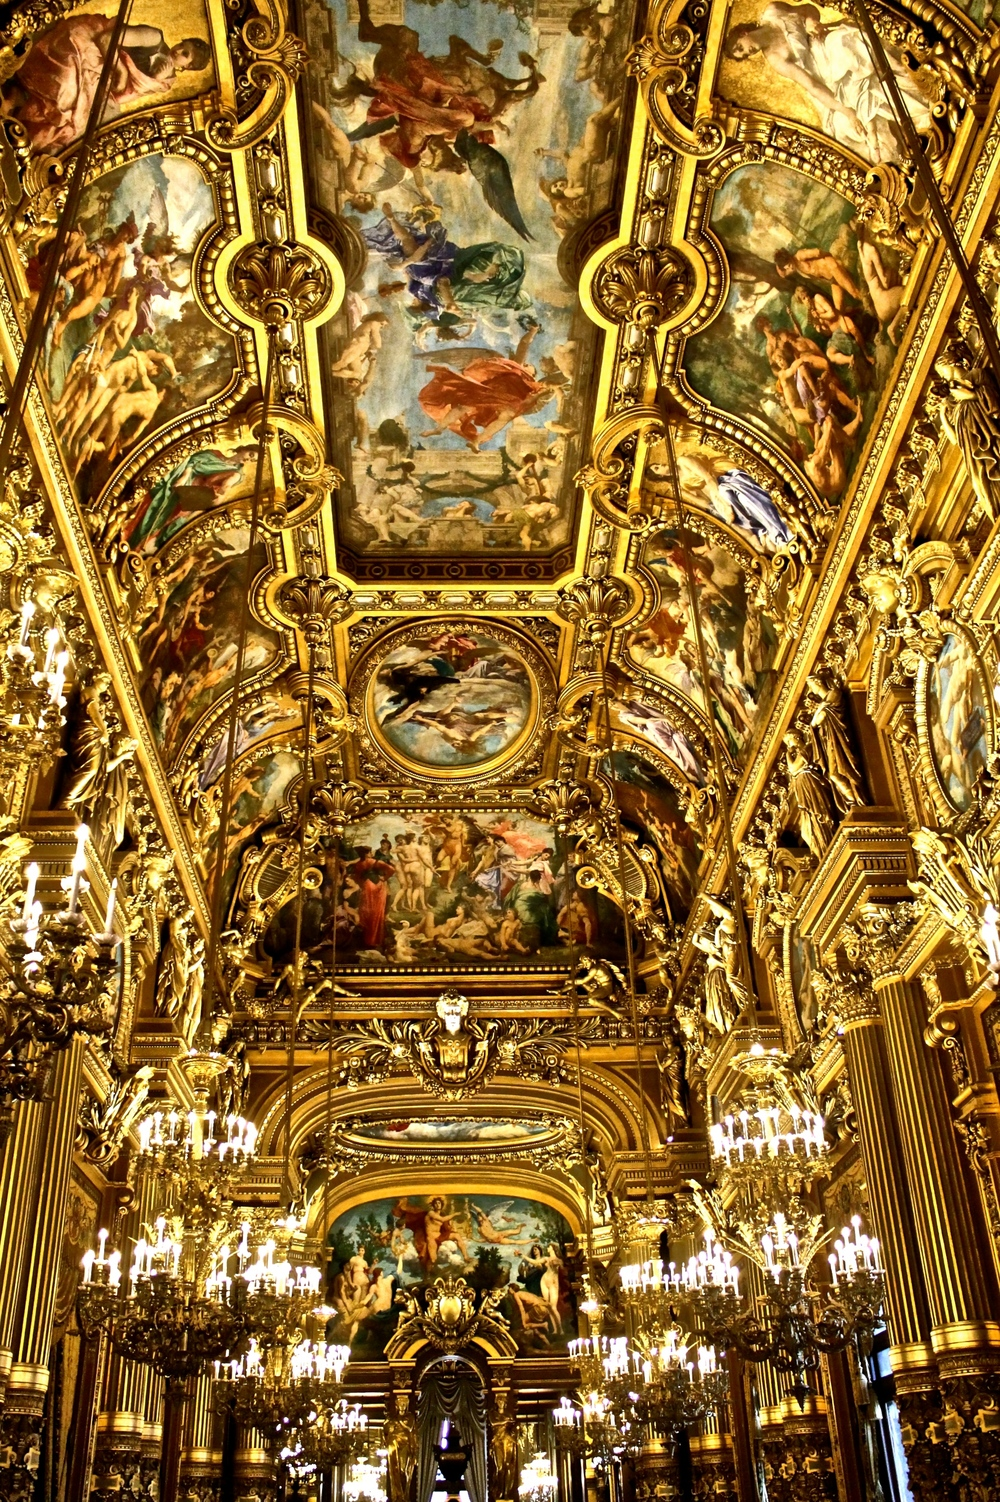 Palais Garnier, Royal Opera House, Paris